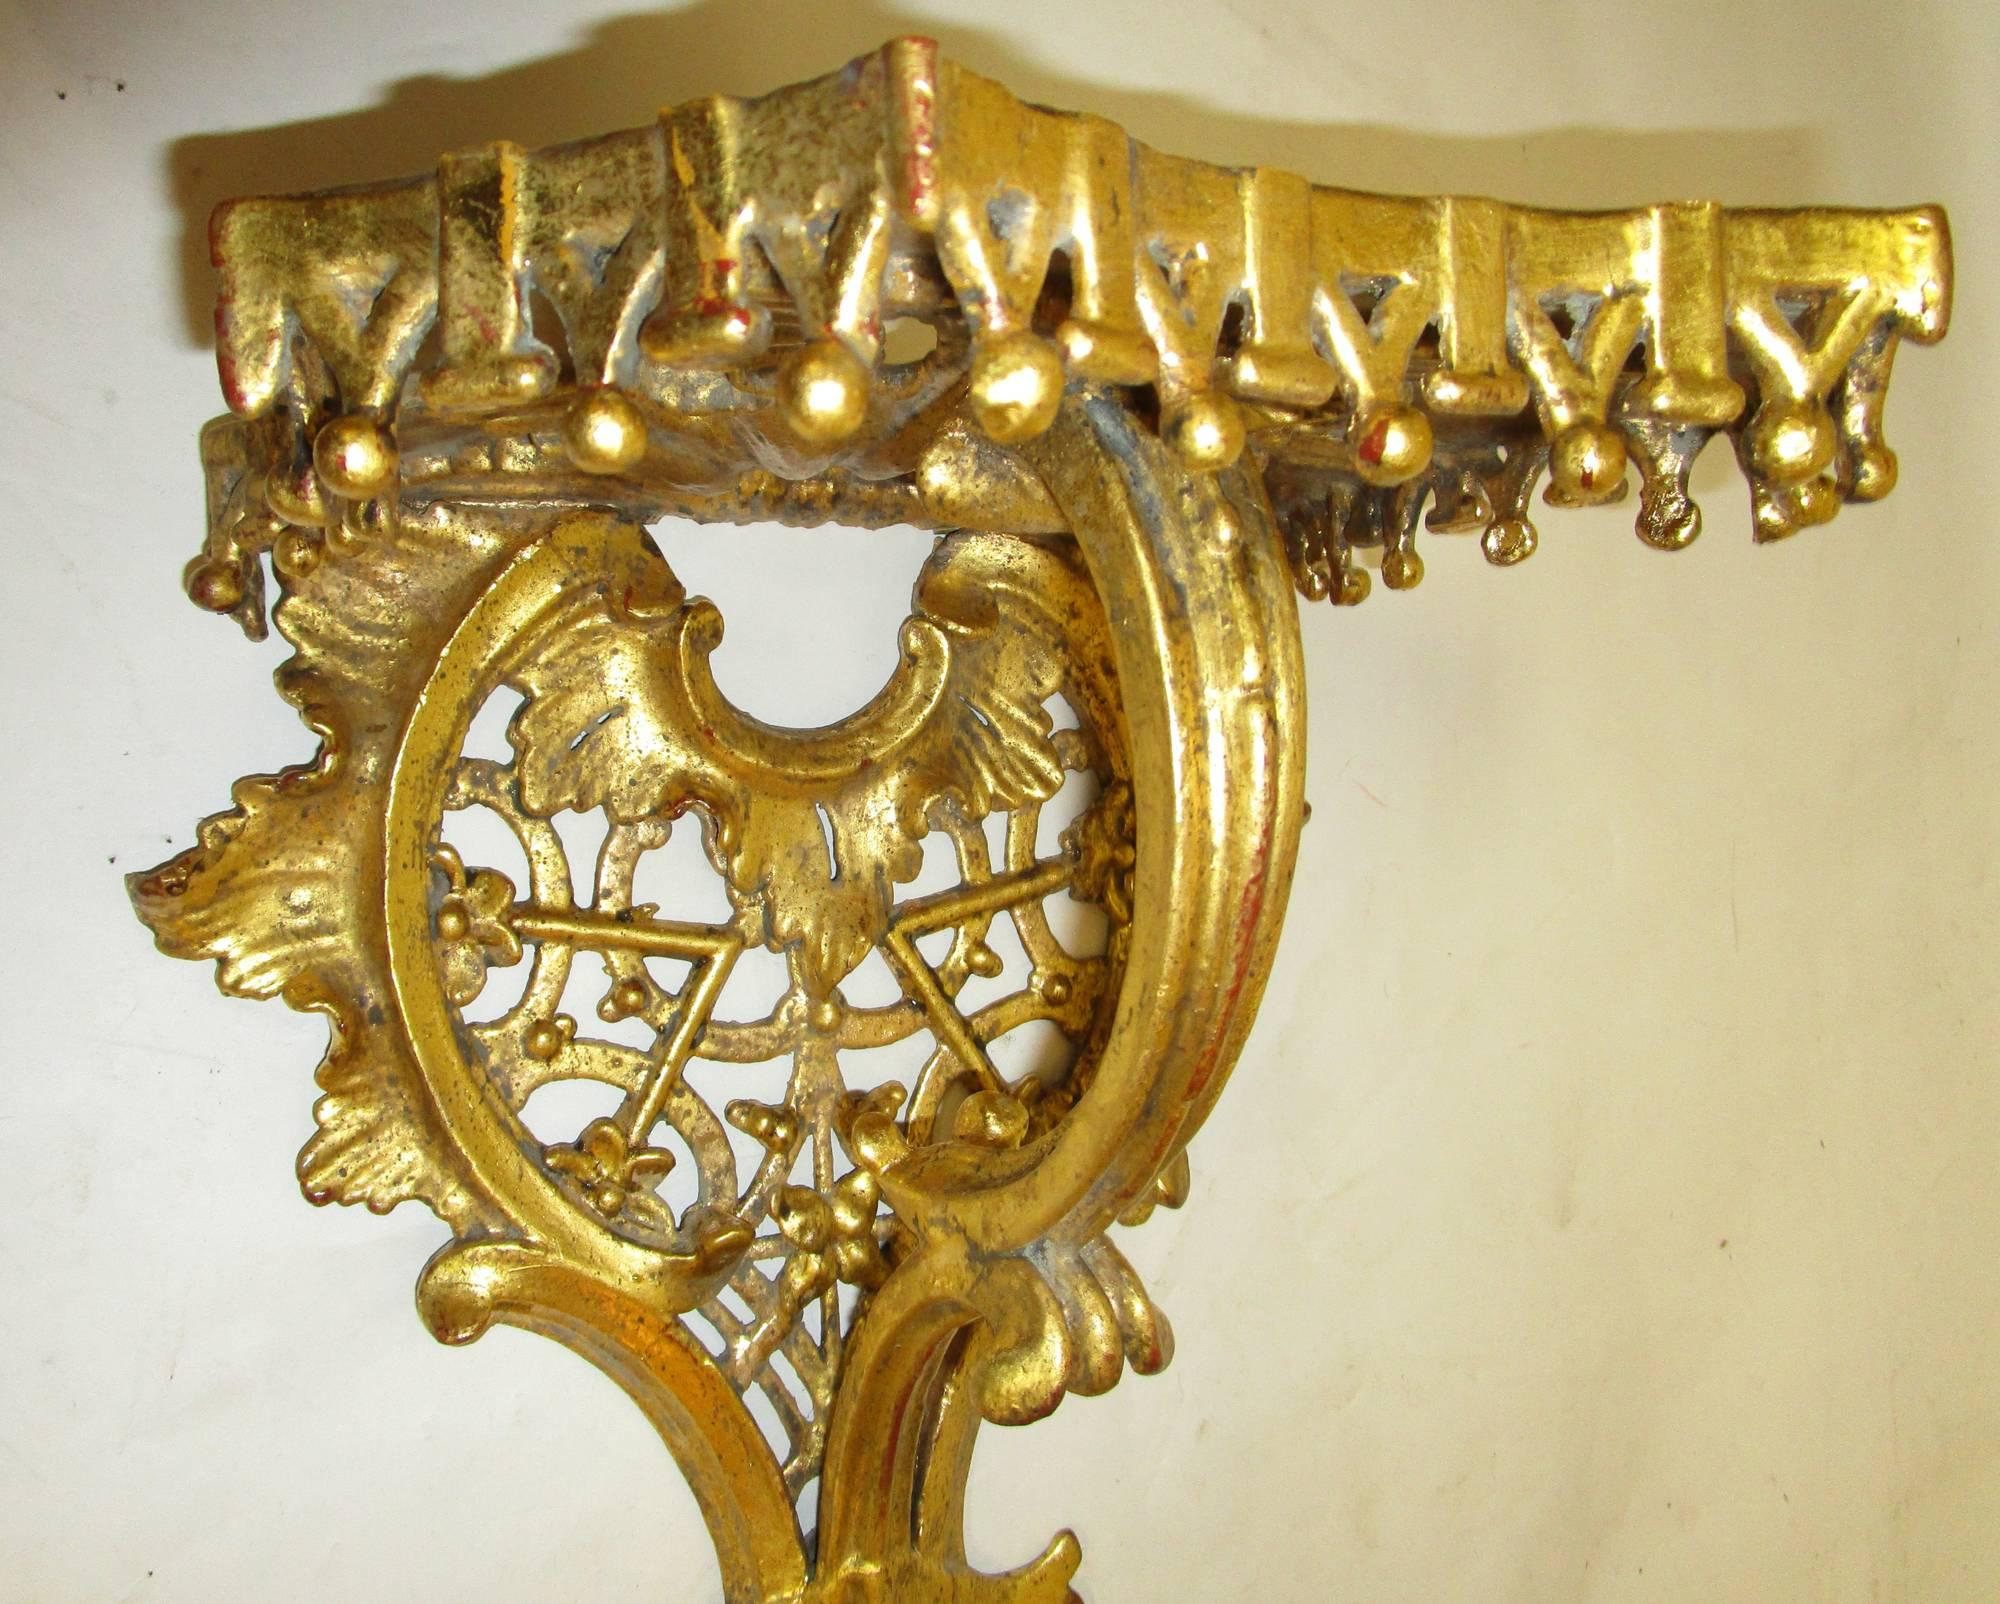 Outstanding Decorative Wall Brackets For Sale Component - Wall Art ...